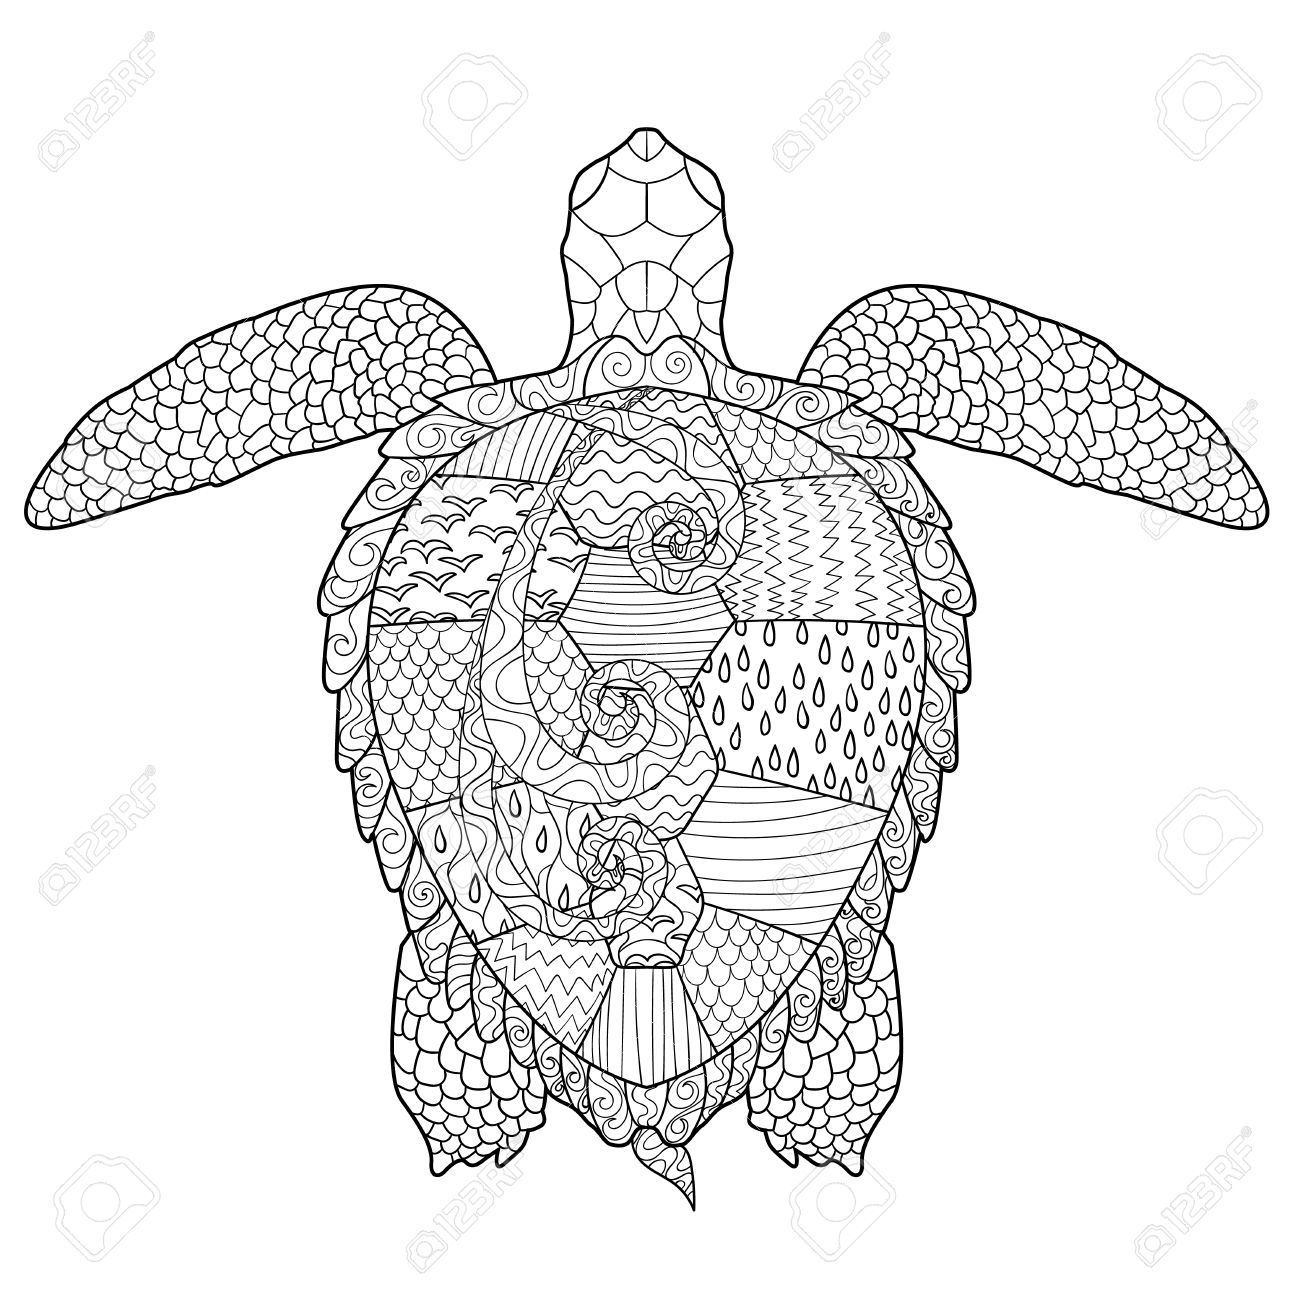 Sea turtle with high details. Adult antistress coloring page. Hand drawn doodle for art therapy. Sketch for tattoo, poster, print, t-shirt - 50897035